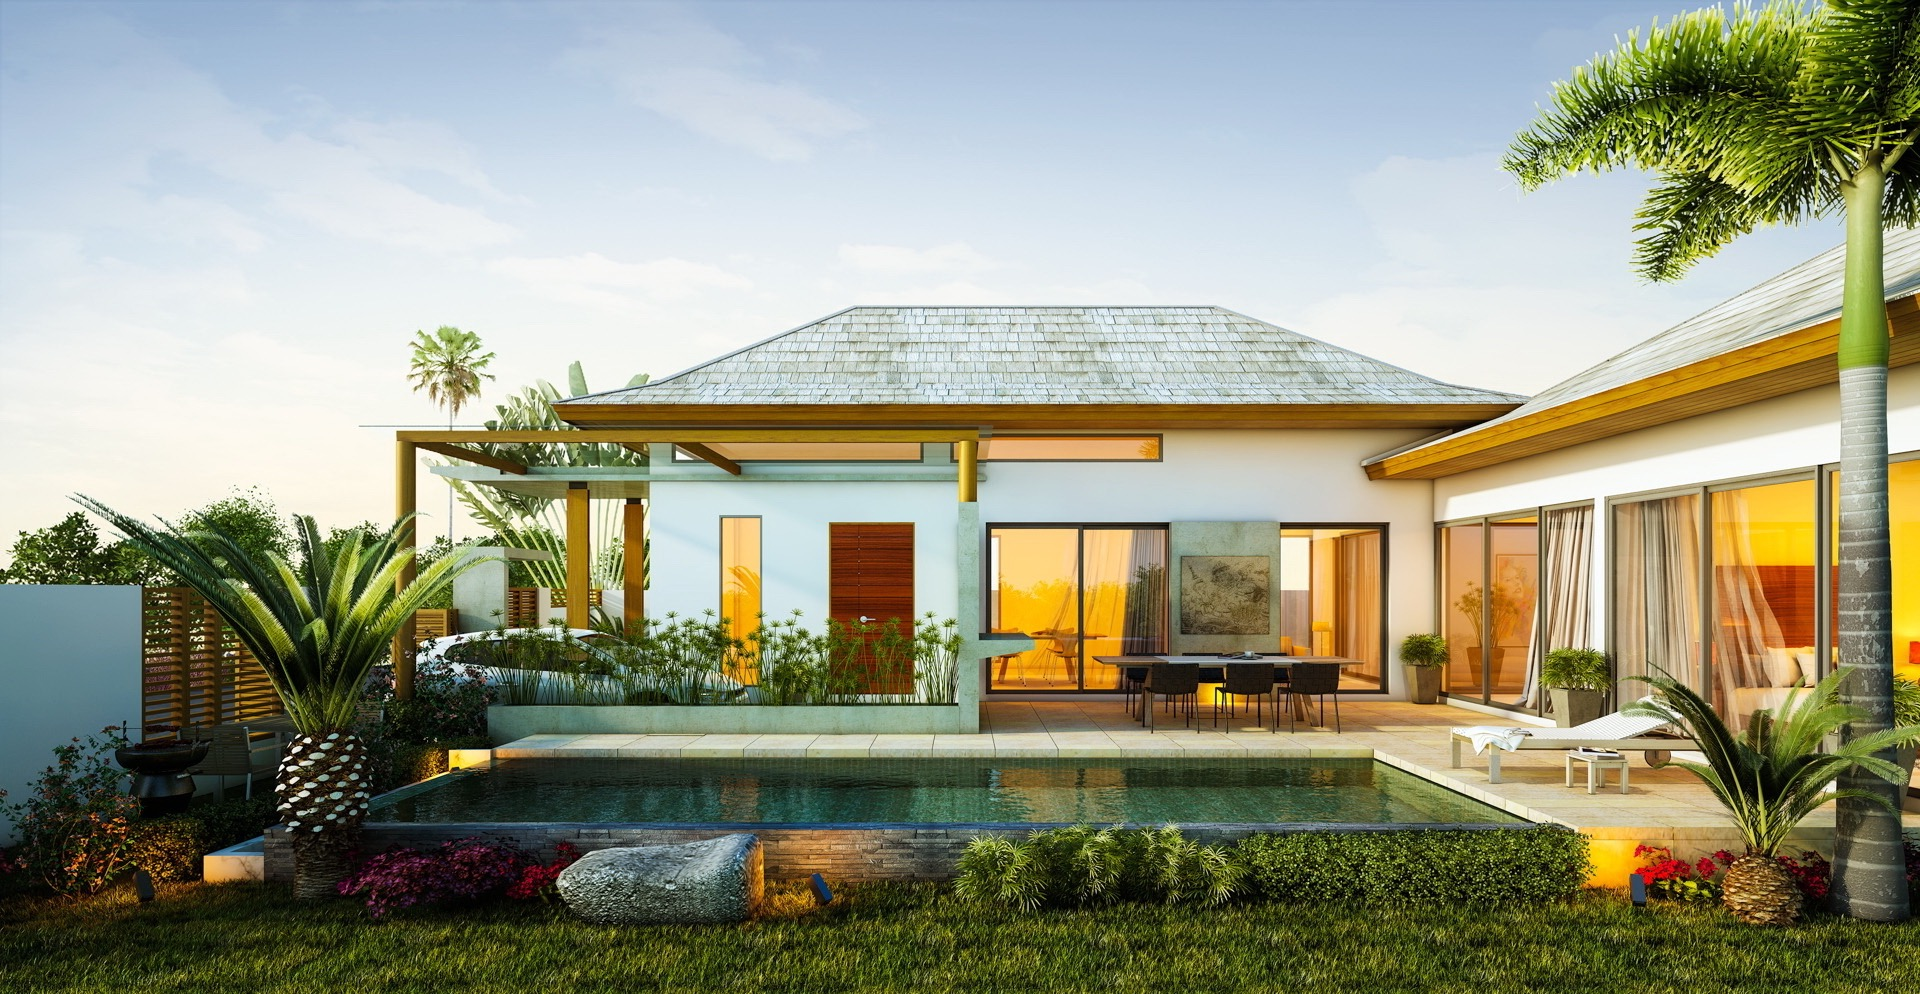 Exterior: Tropical Homes Design With Relaxing Ambiance